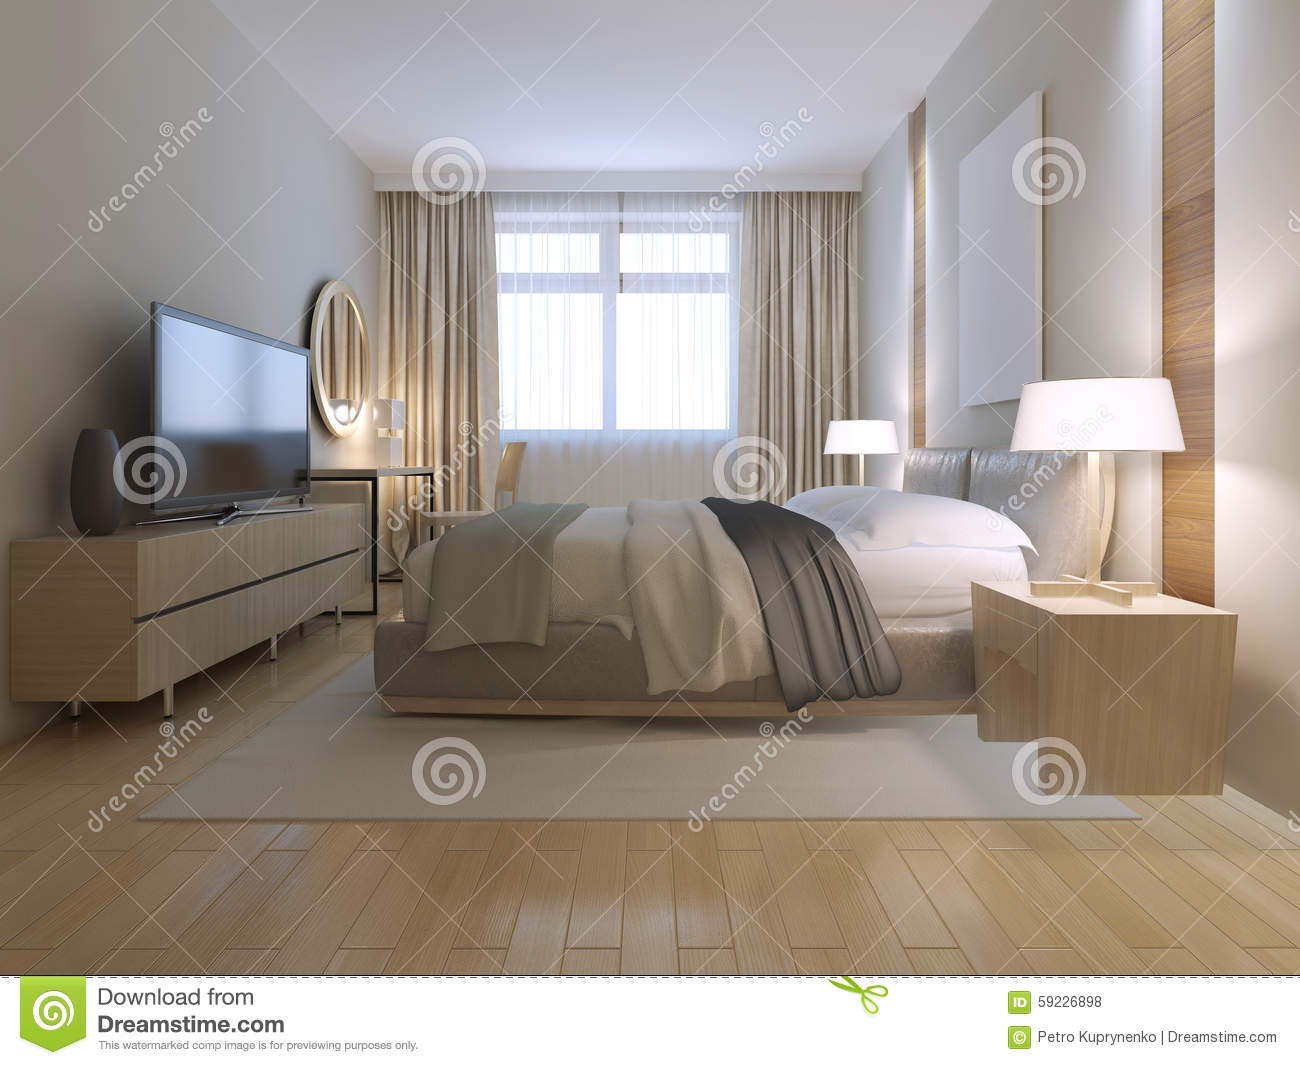 com ideas contemporary design marceladick at of bedroom with set image new cute